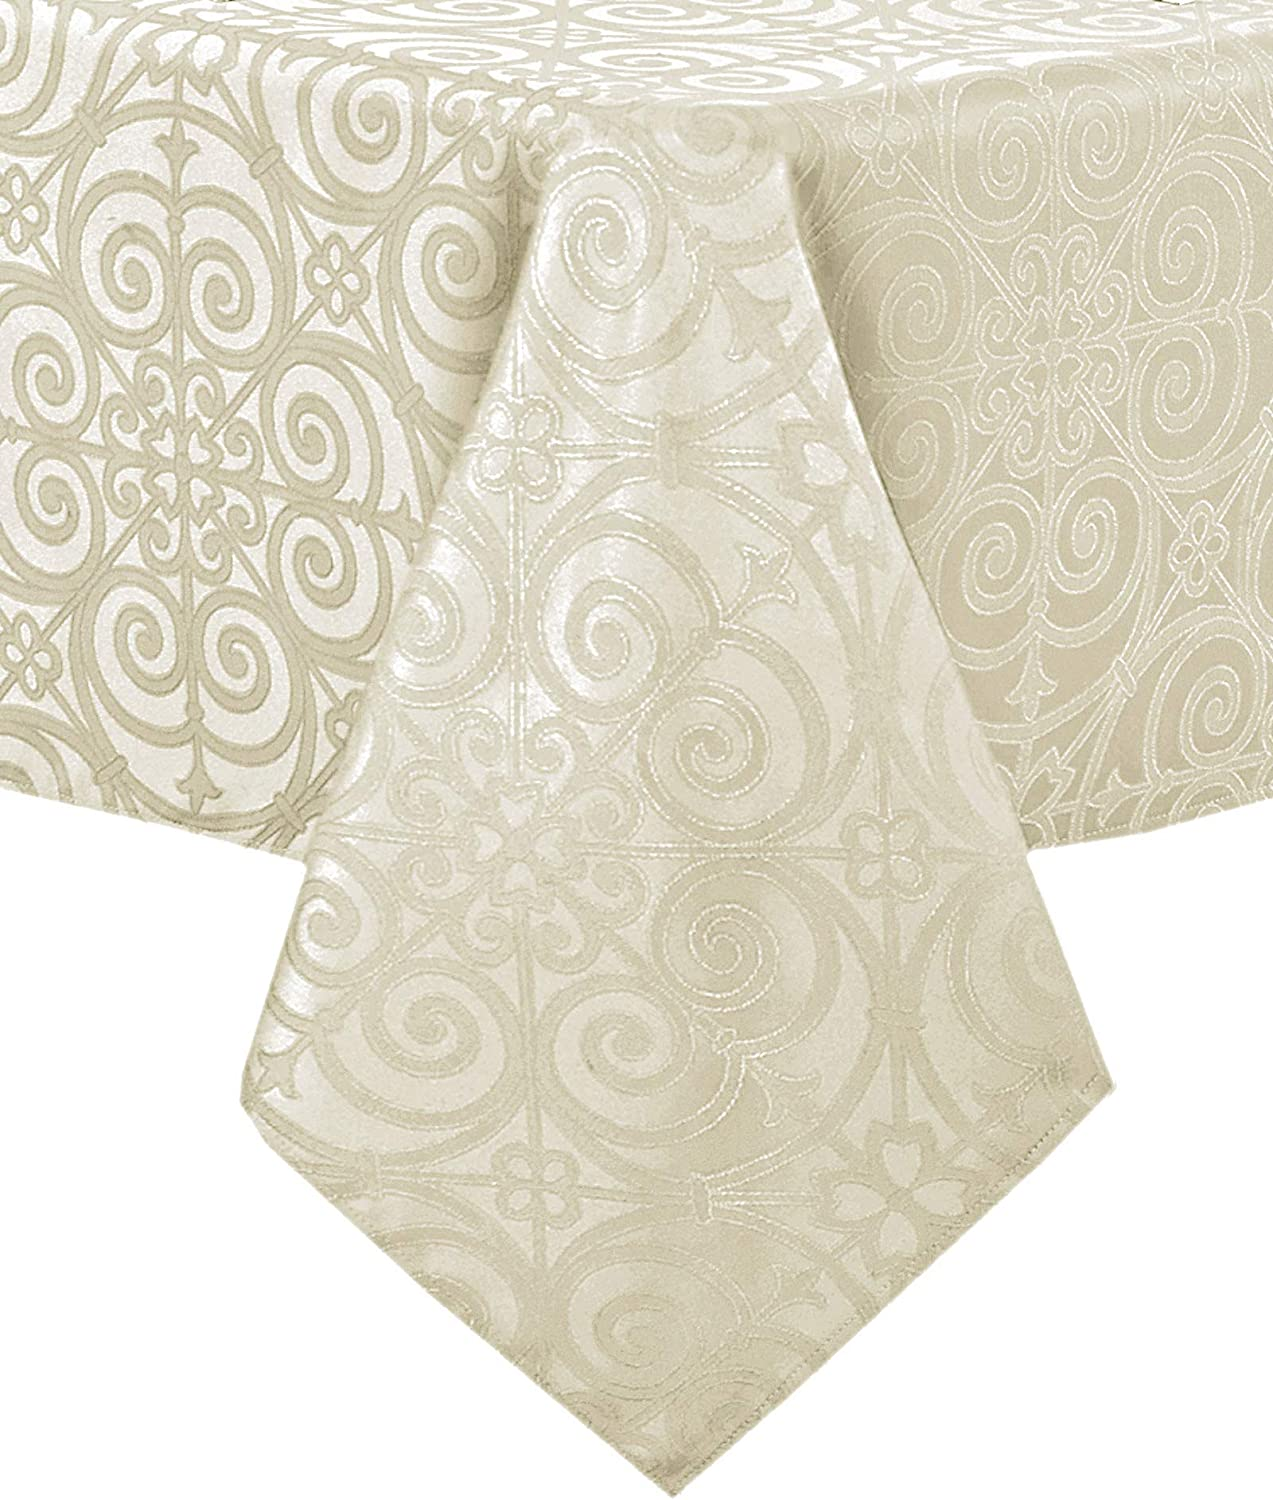 Newbridge Ironworks Scroll Damask Fine Dining, Party and Banquet Fabric Tablecloth, Contemporary Damask Soil Resistant, No Iron Tablecloth , 70 Inch Round, Ivory